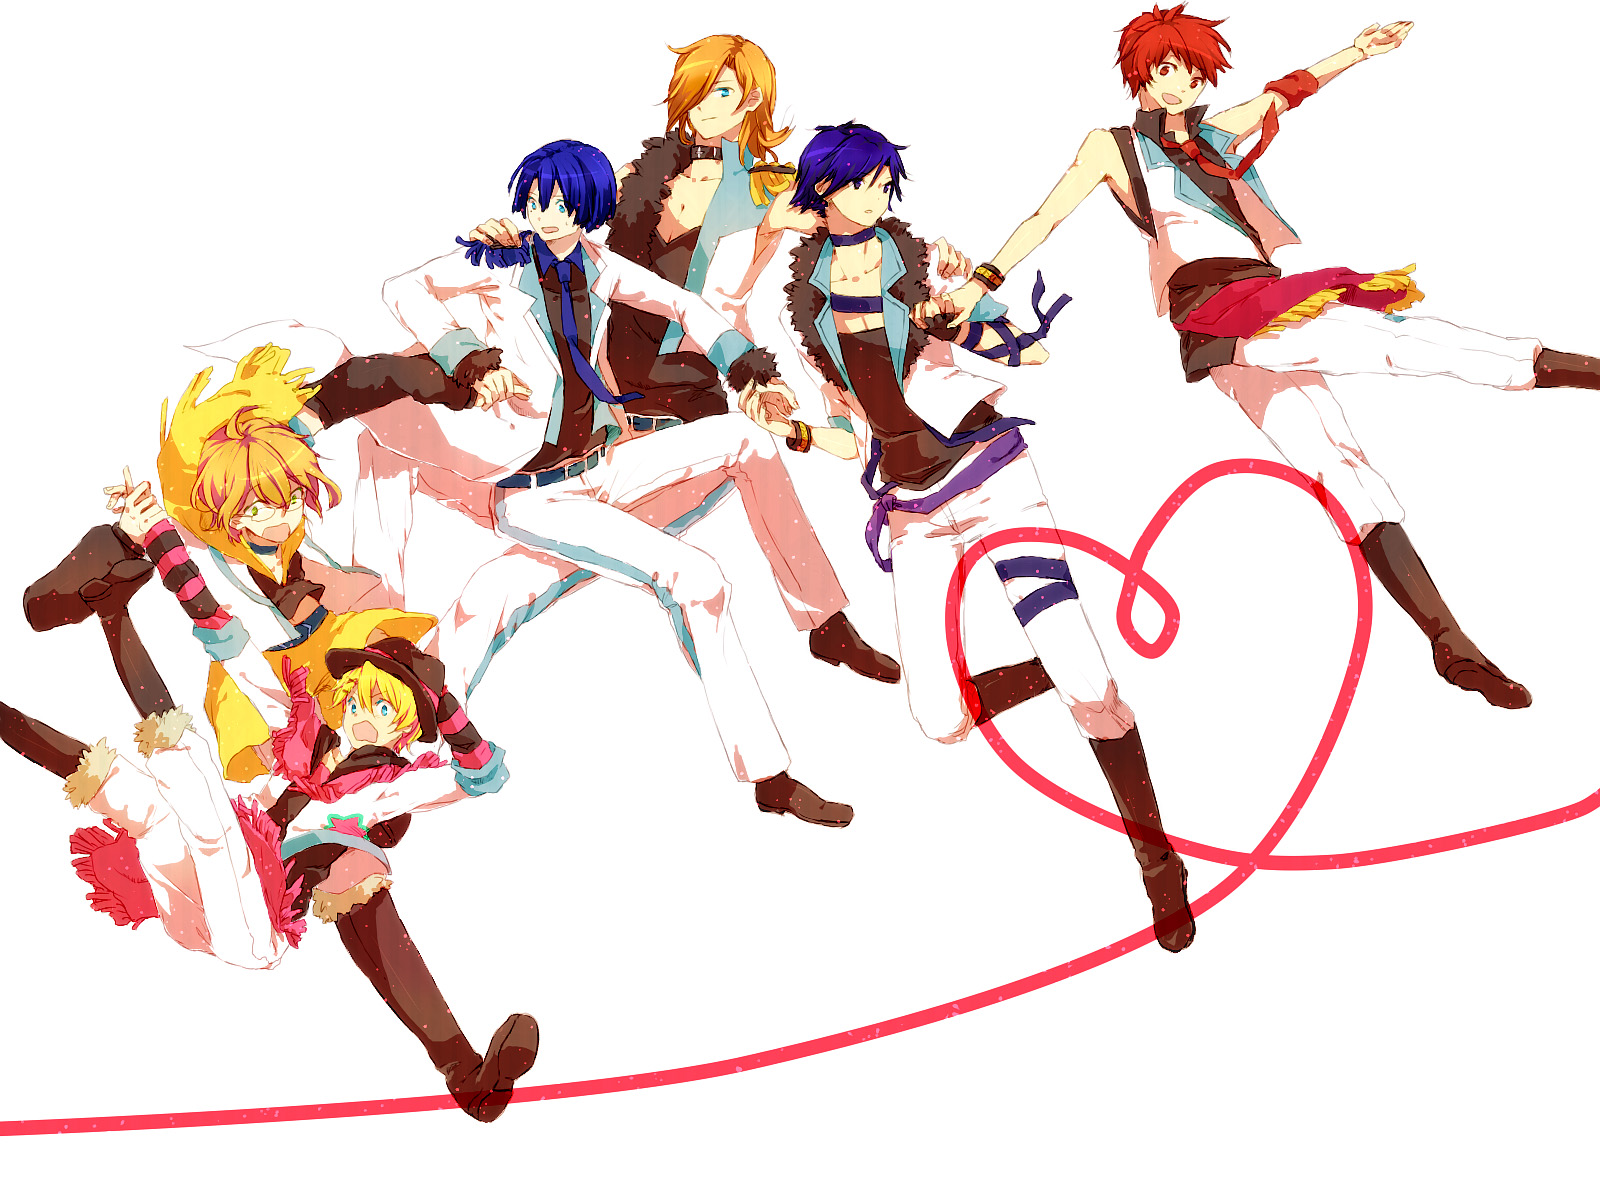 ... Blog: Best Male Visual Idol Group - ST☆RISH from Uta no Prince-sama